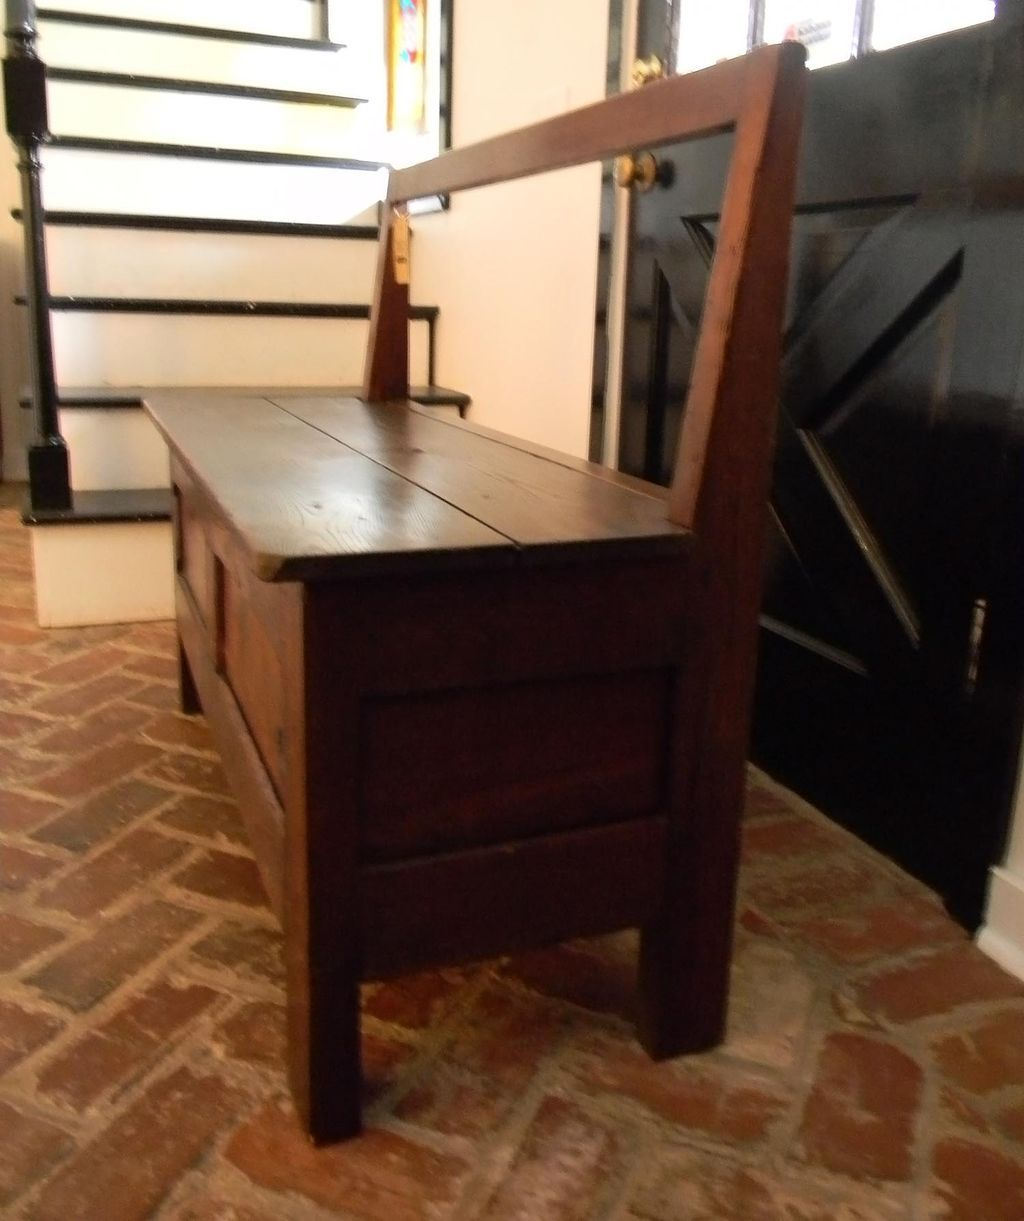 Antique Storage Bench From Bretony Region Of France Early